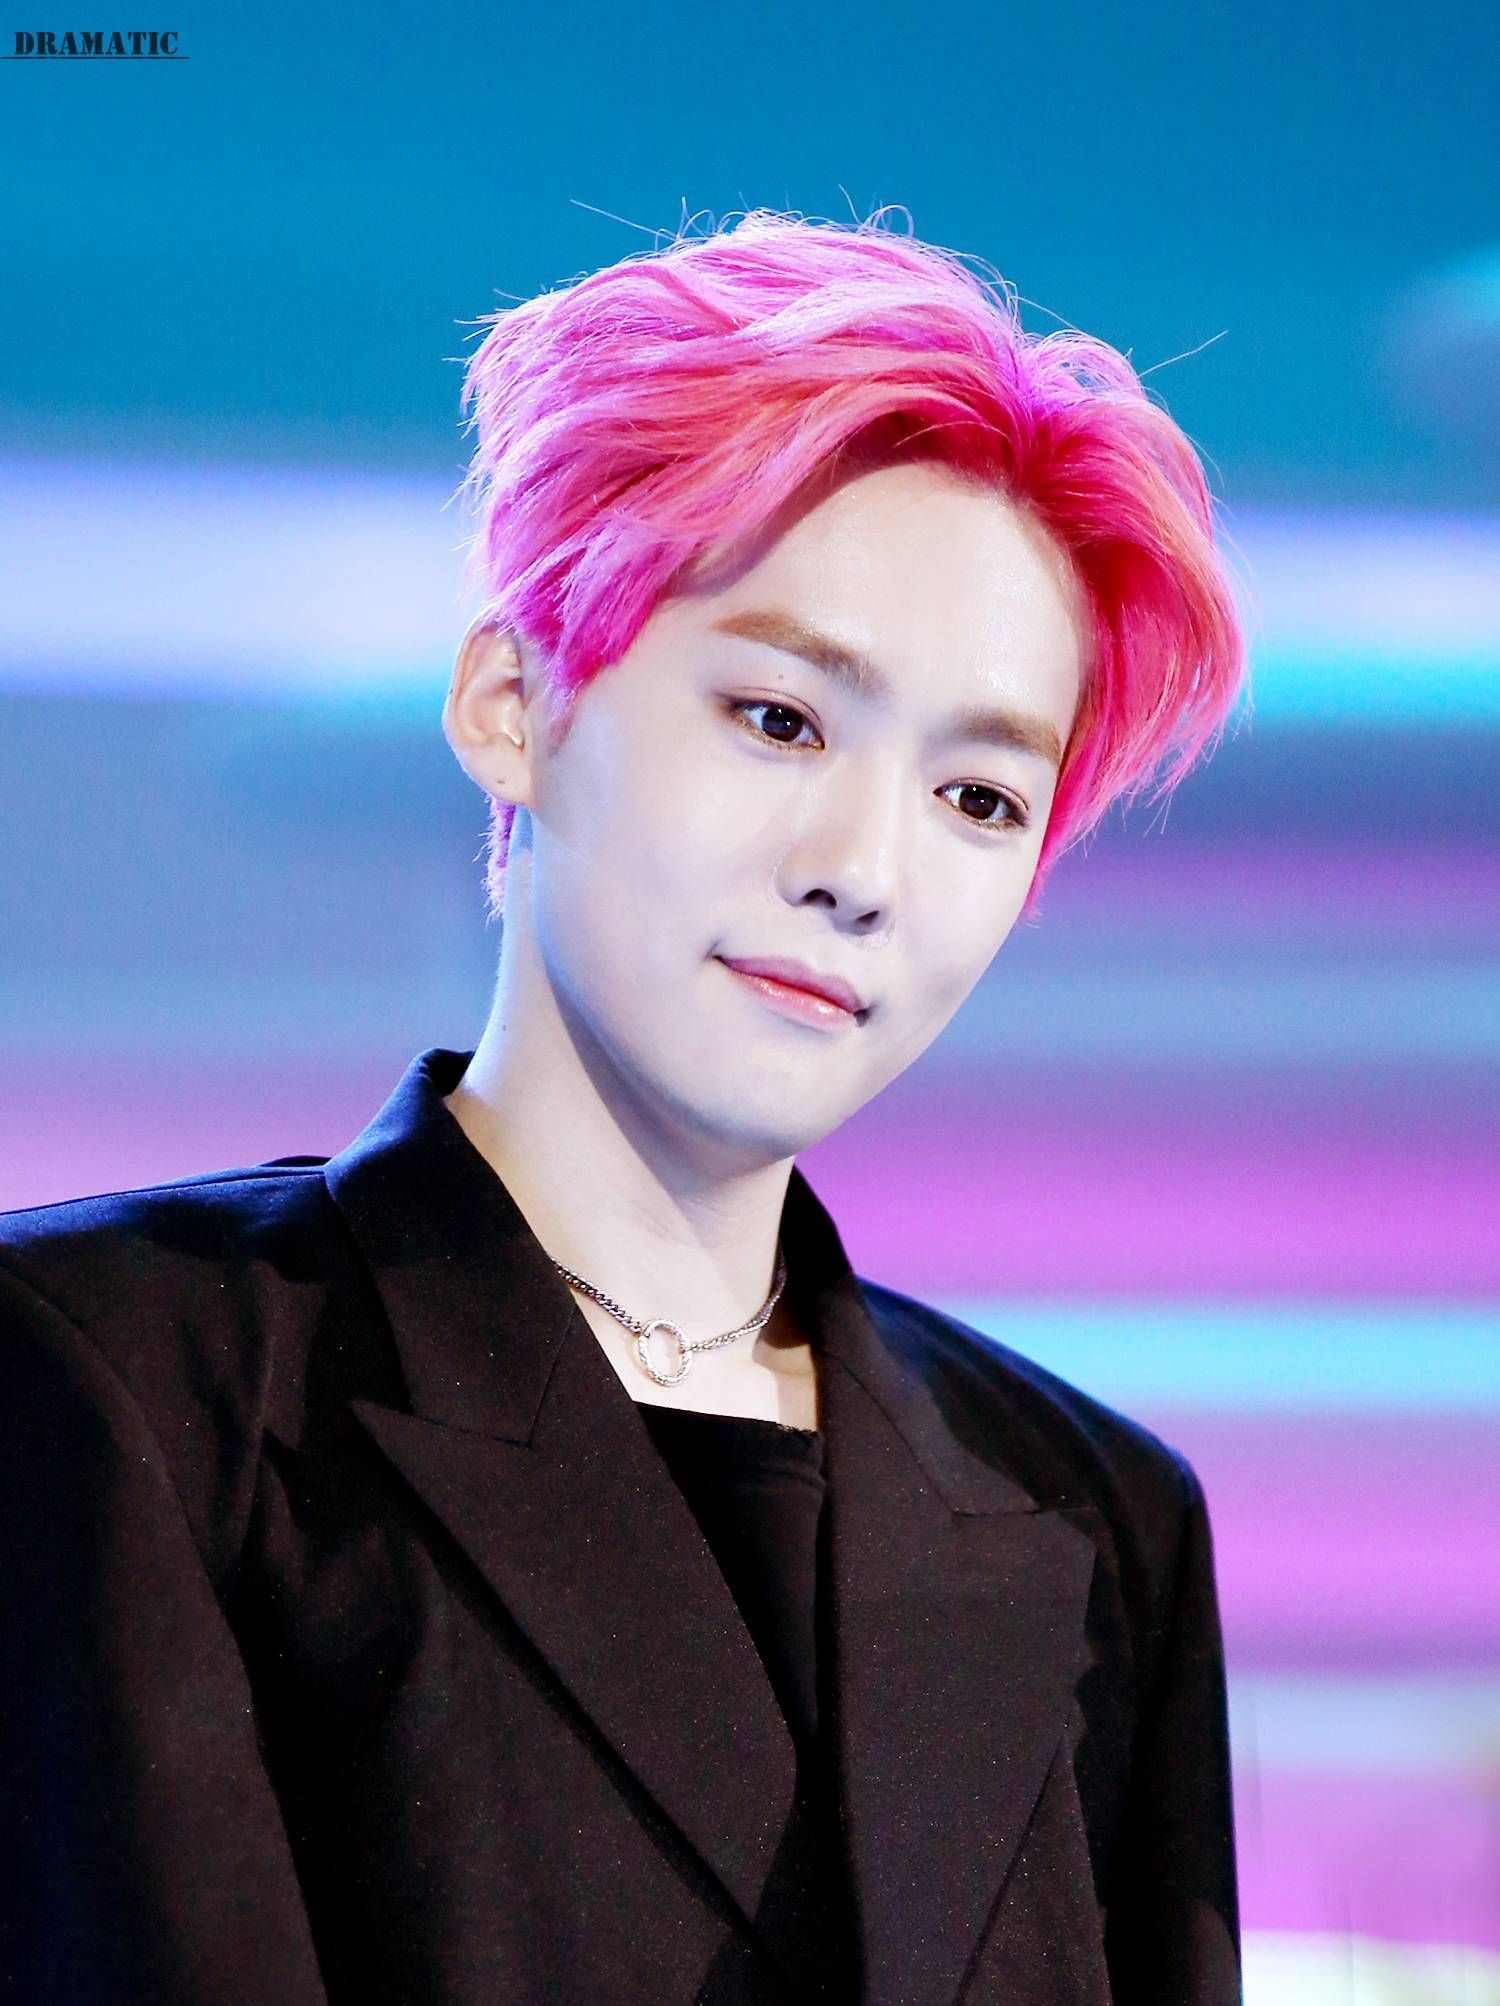 Winner S Jinwoo Winner Jinwoo Winner Kpop Pink Hair